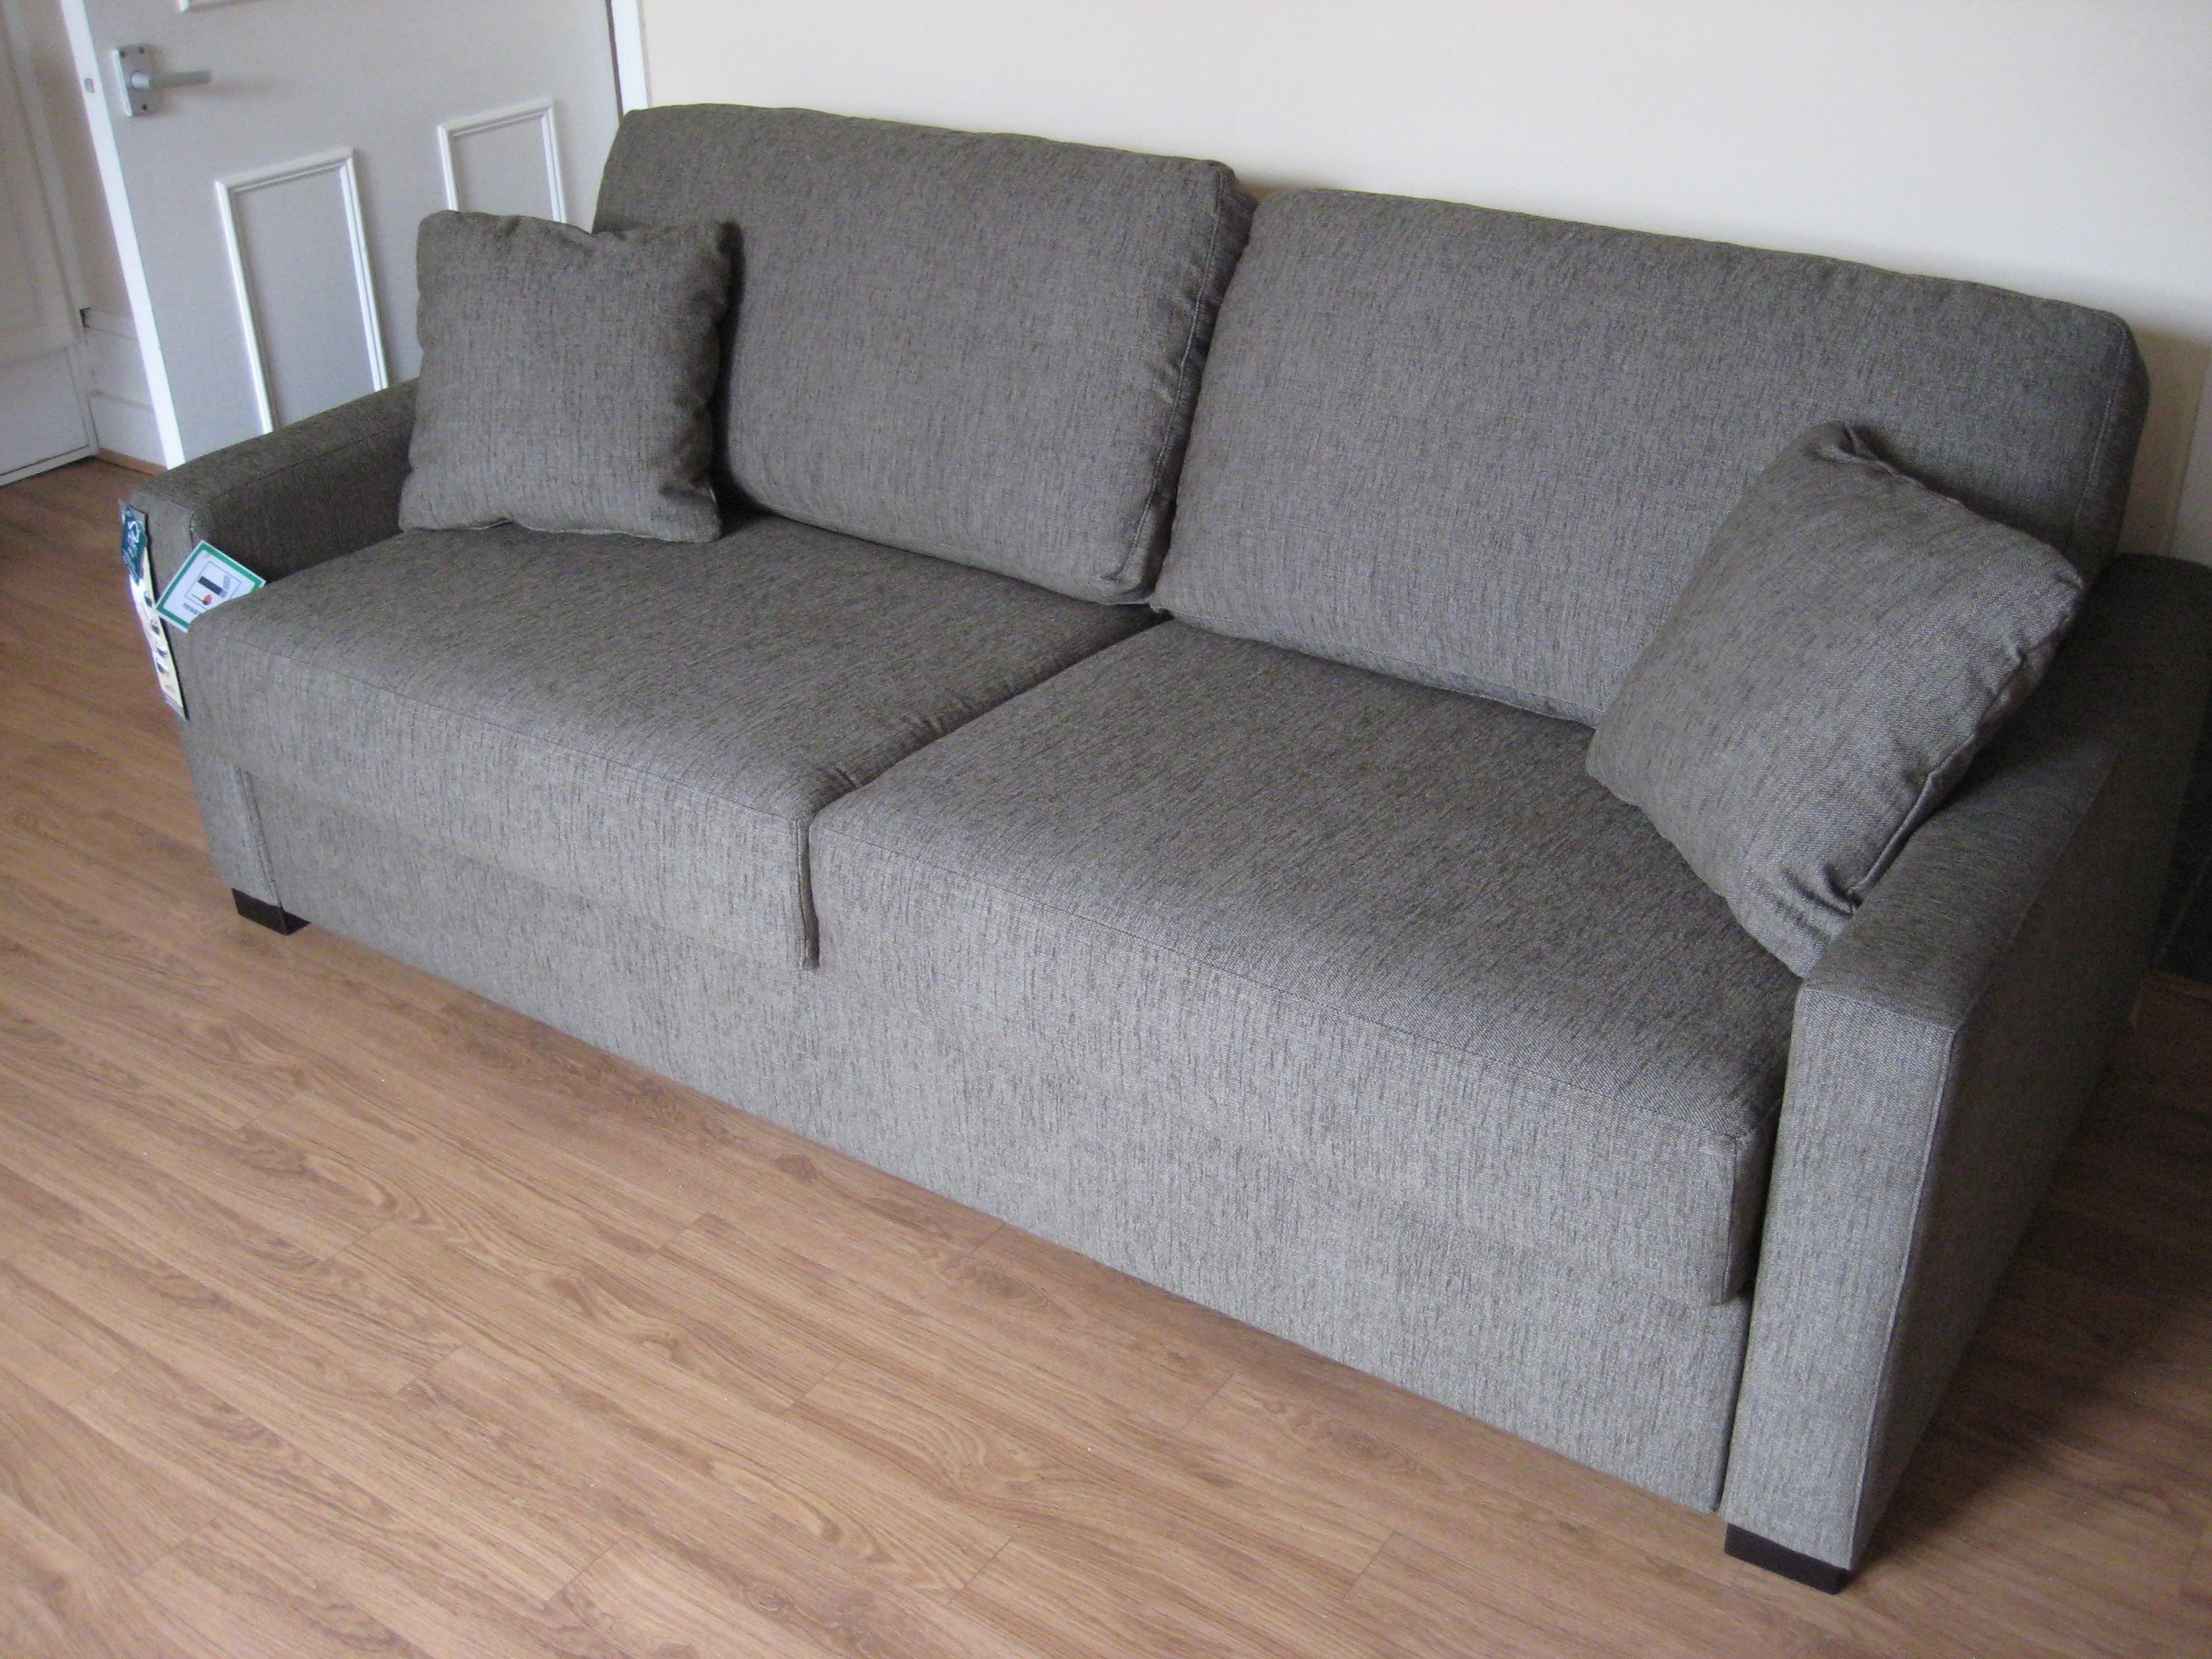 Ash Sofa Bed In Grey Brown Washable Fabric From The Supplier Contains A 160 Cm X 195 Cm Bonnel Reflex Foam Mattress For Reg With Images Sofa Sofa Bed Sofa Bed With Chaise